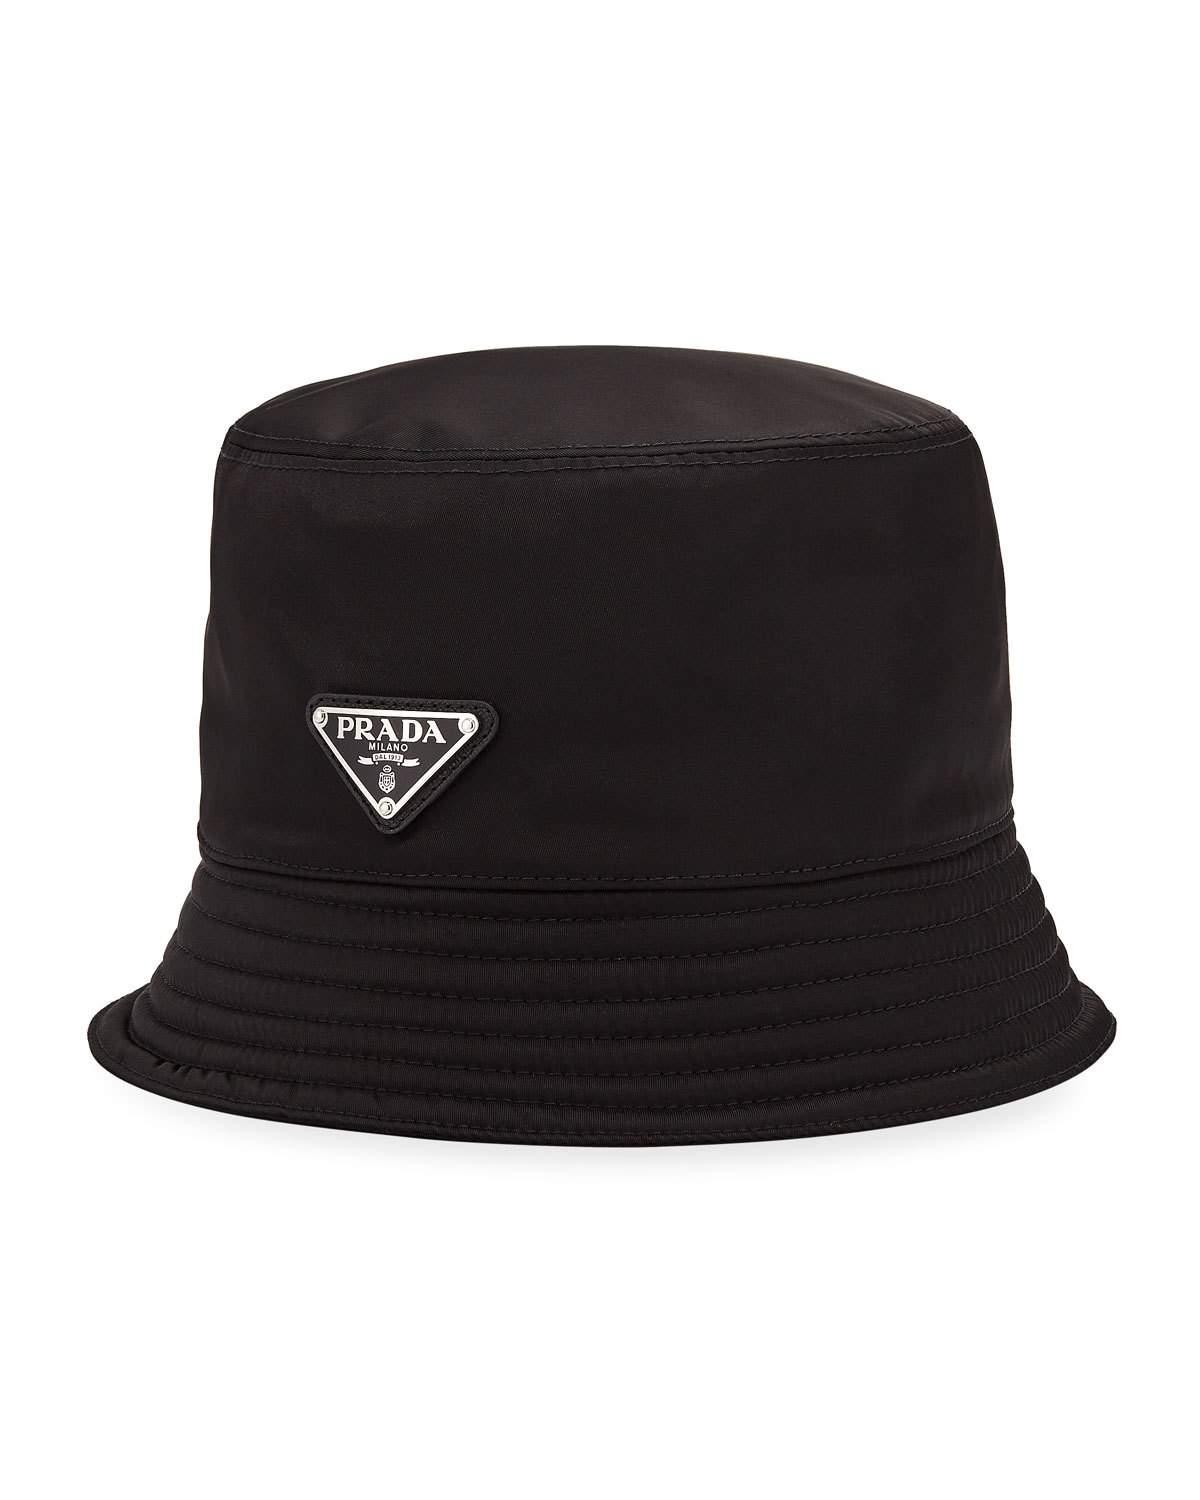 dced84f38f80b Prada Men s Nylon Bucket Hat With Logo